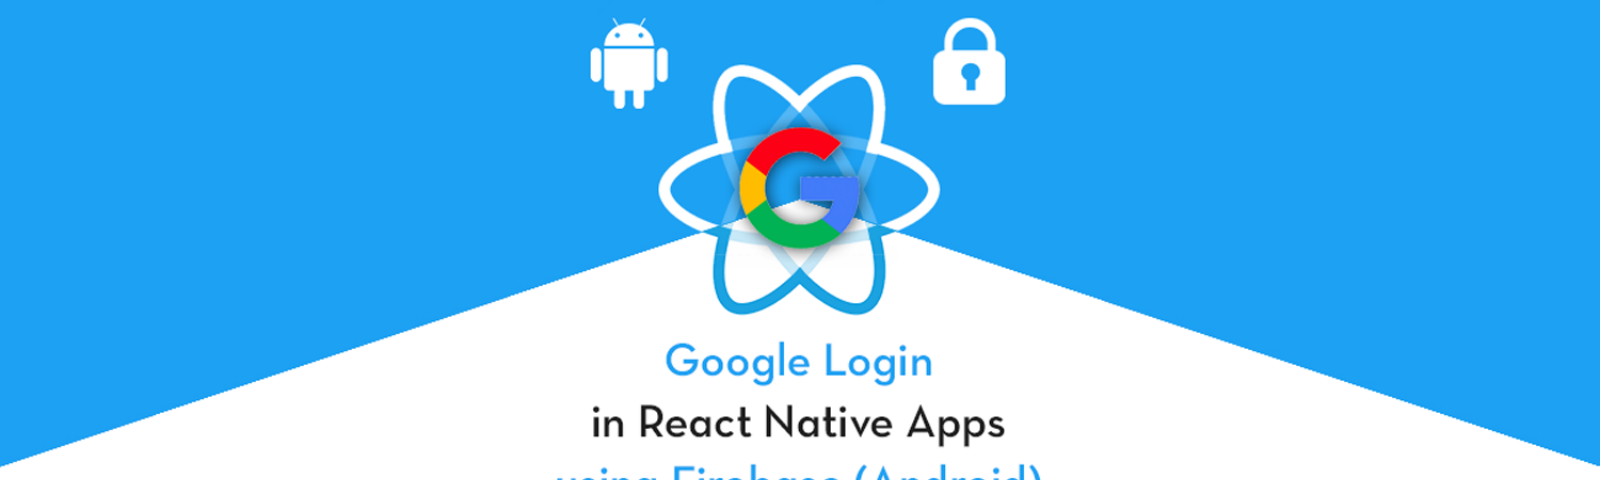 Integrate Google Login in React Native apps with Firebase (Android)